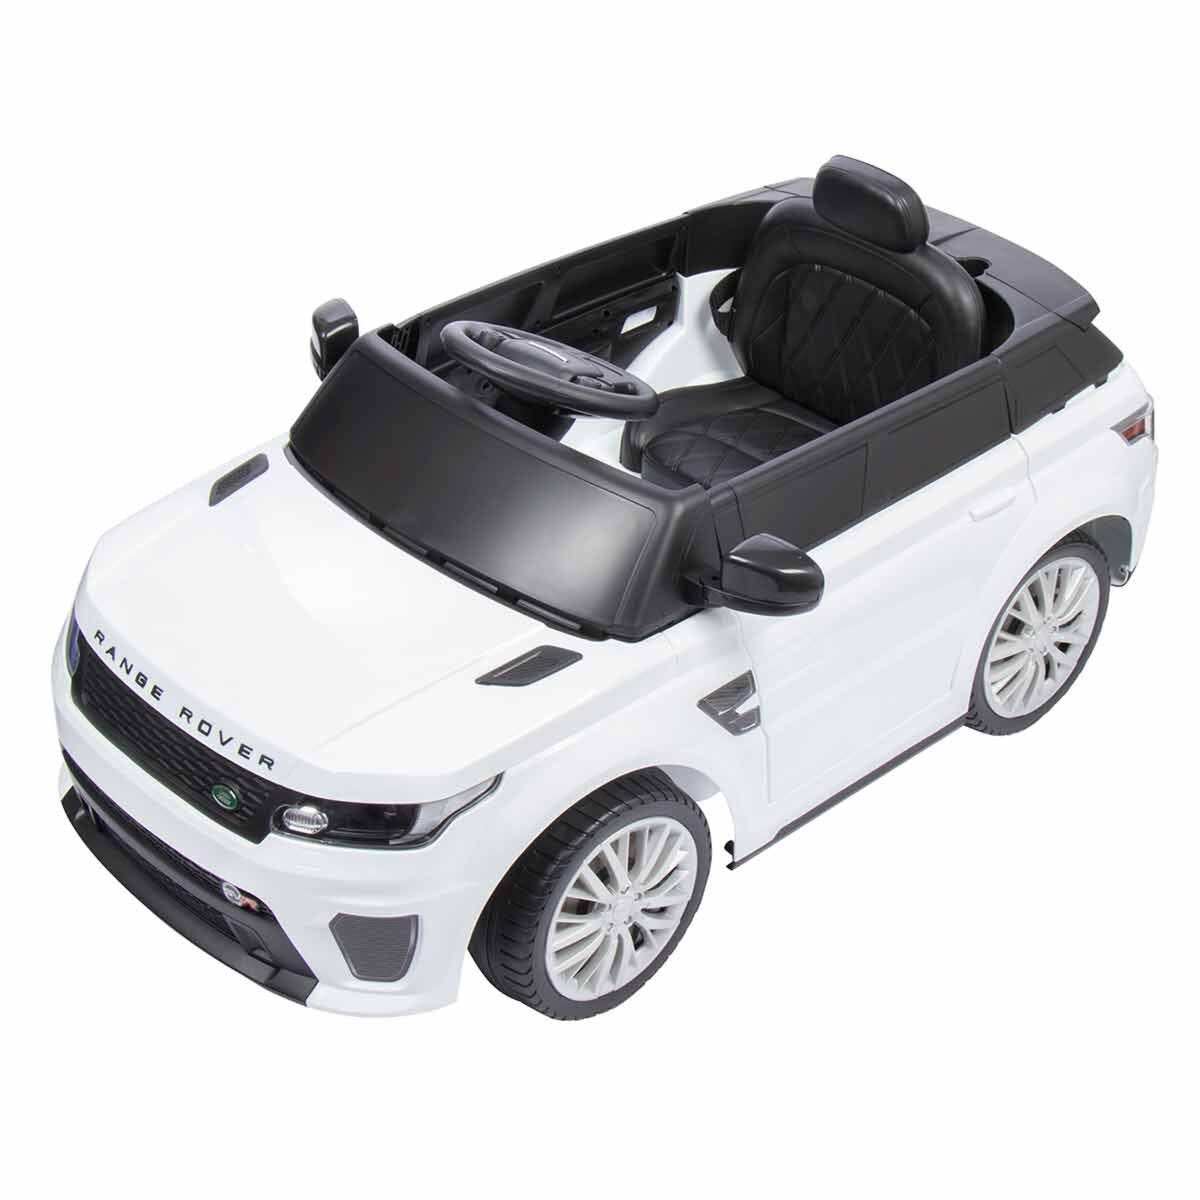 Range Rover 2 in 1 Ride On Electric Car White